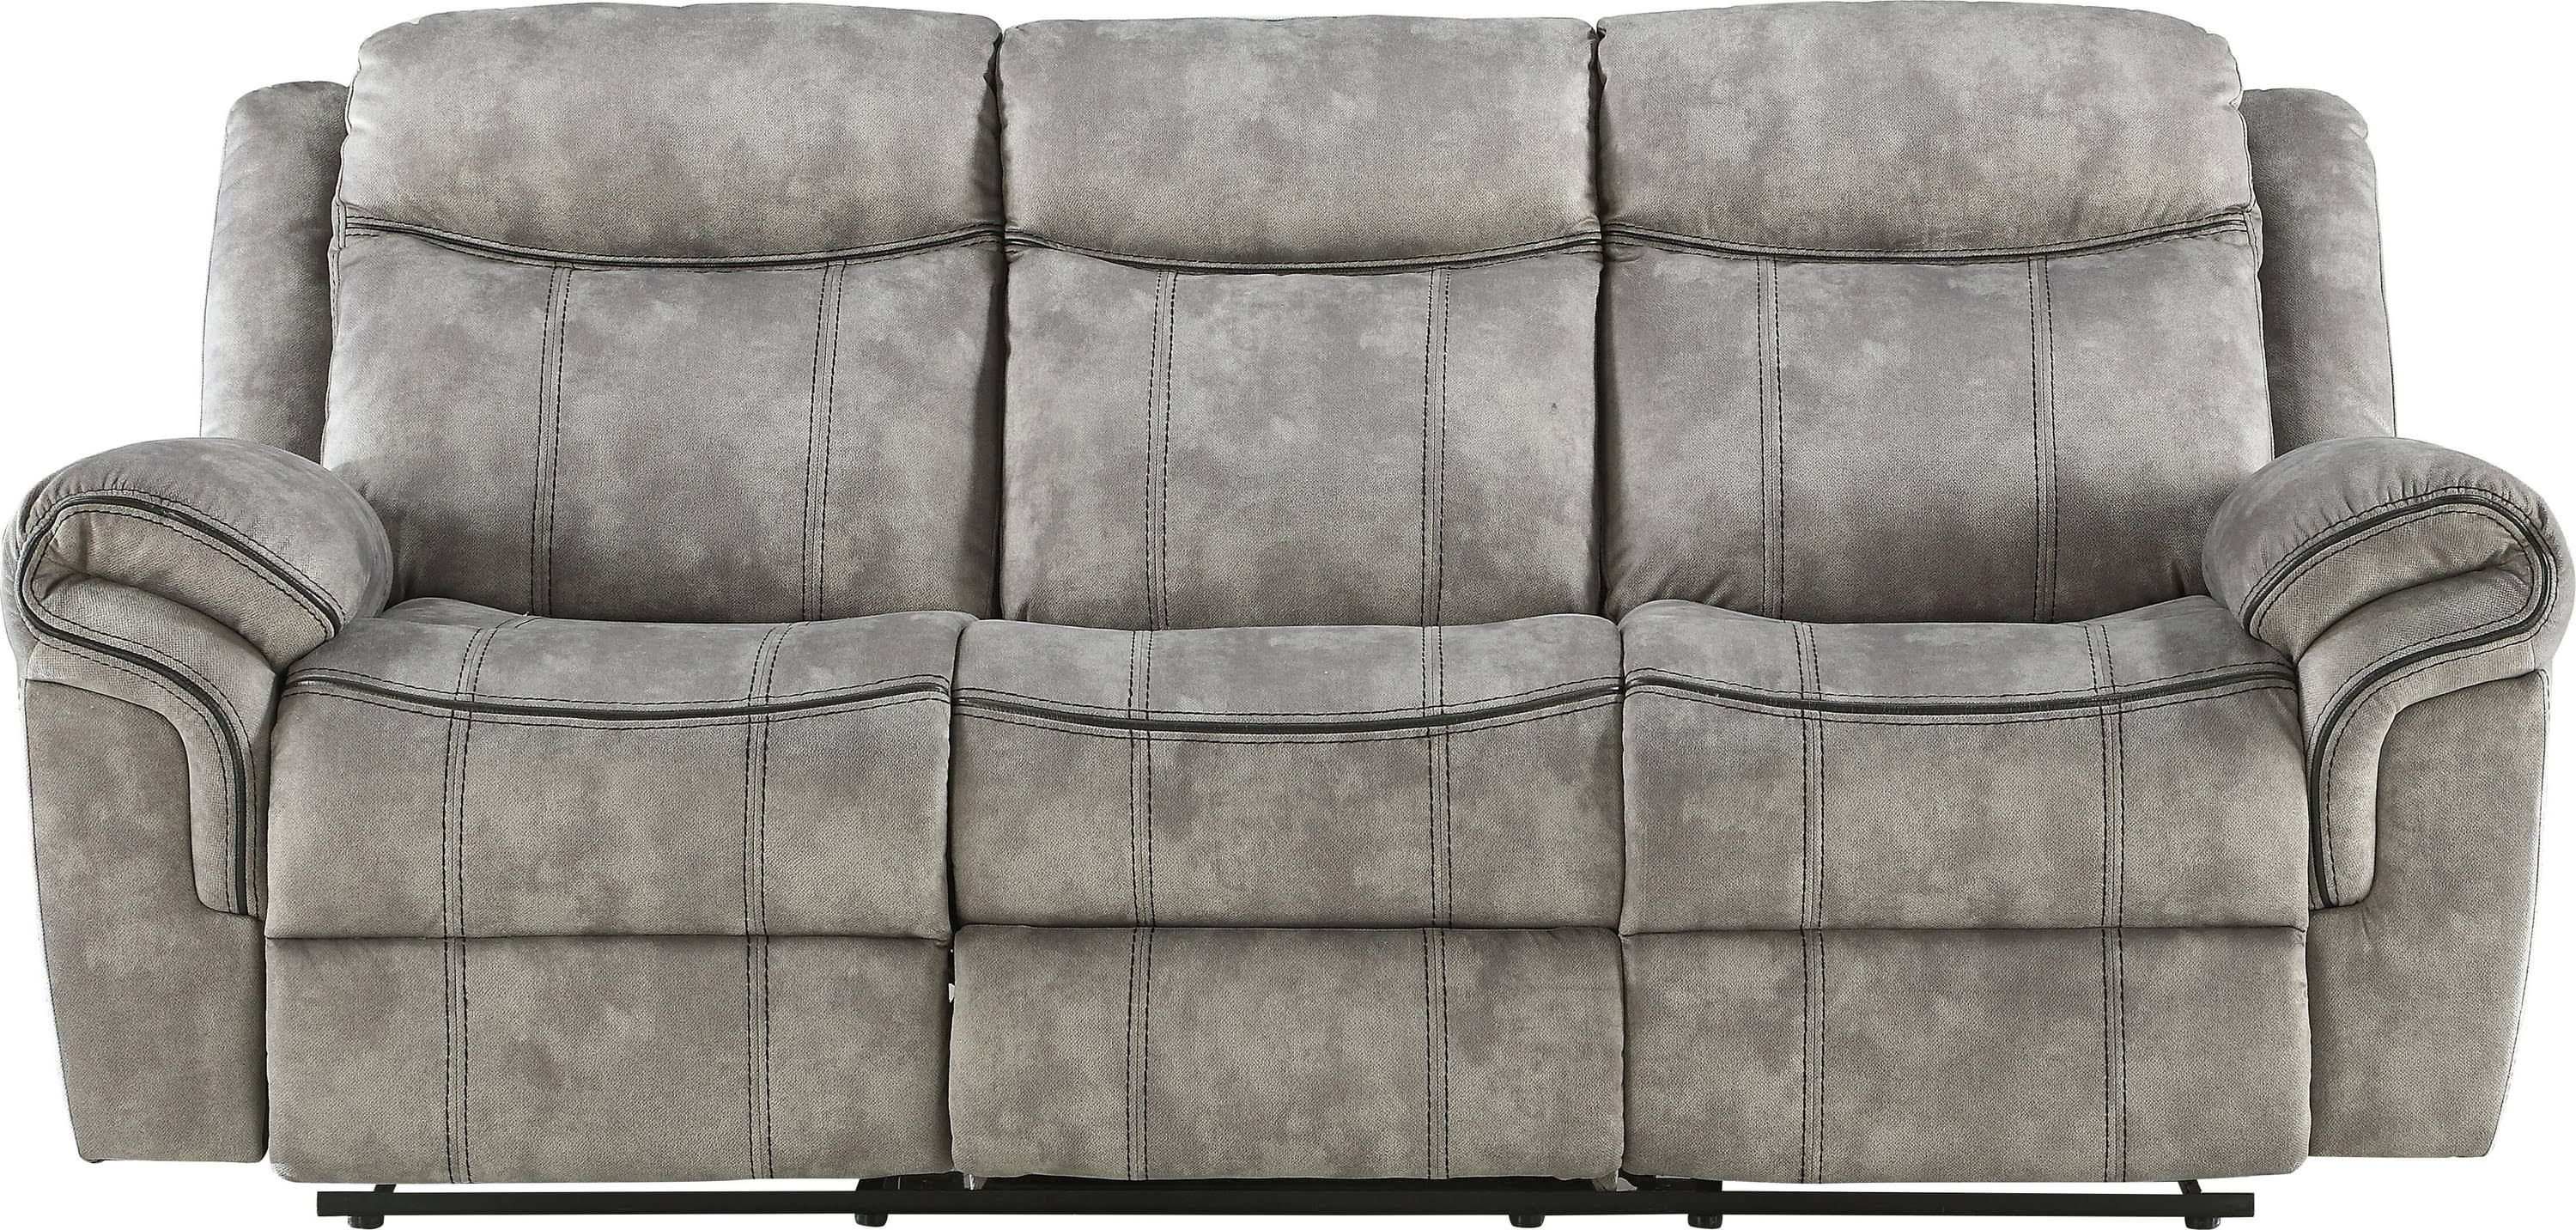 Two Tone Gray Reclining Sofa Front